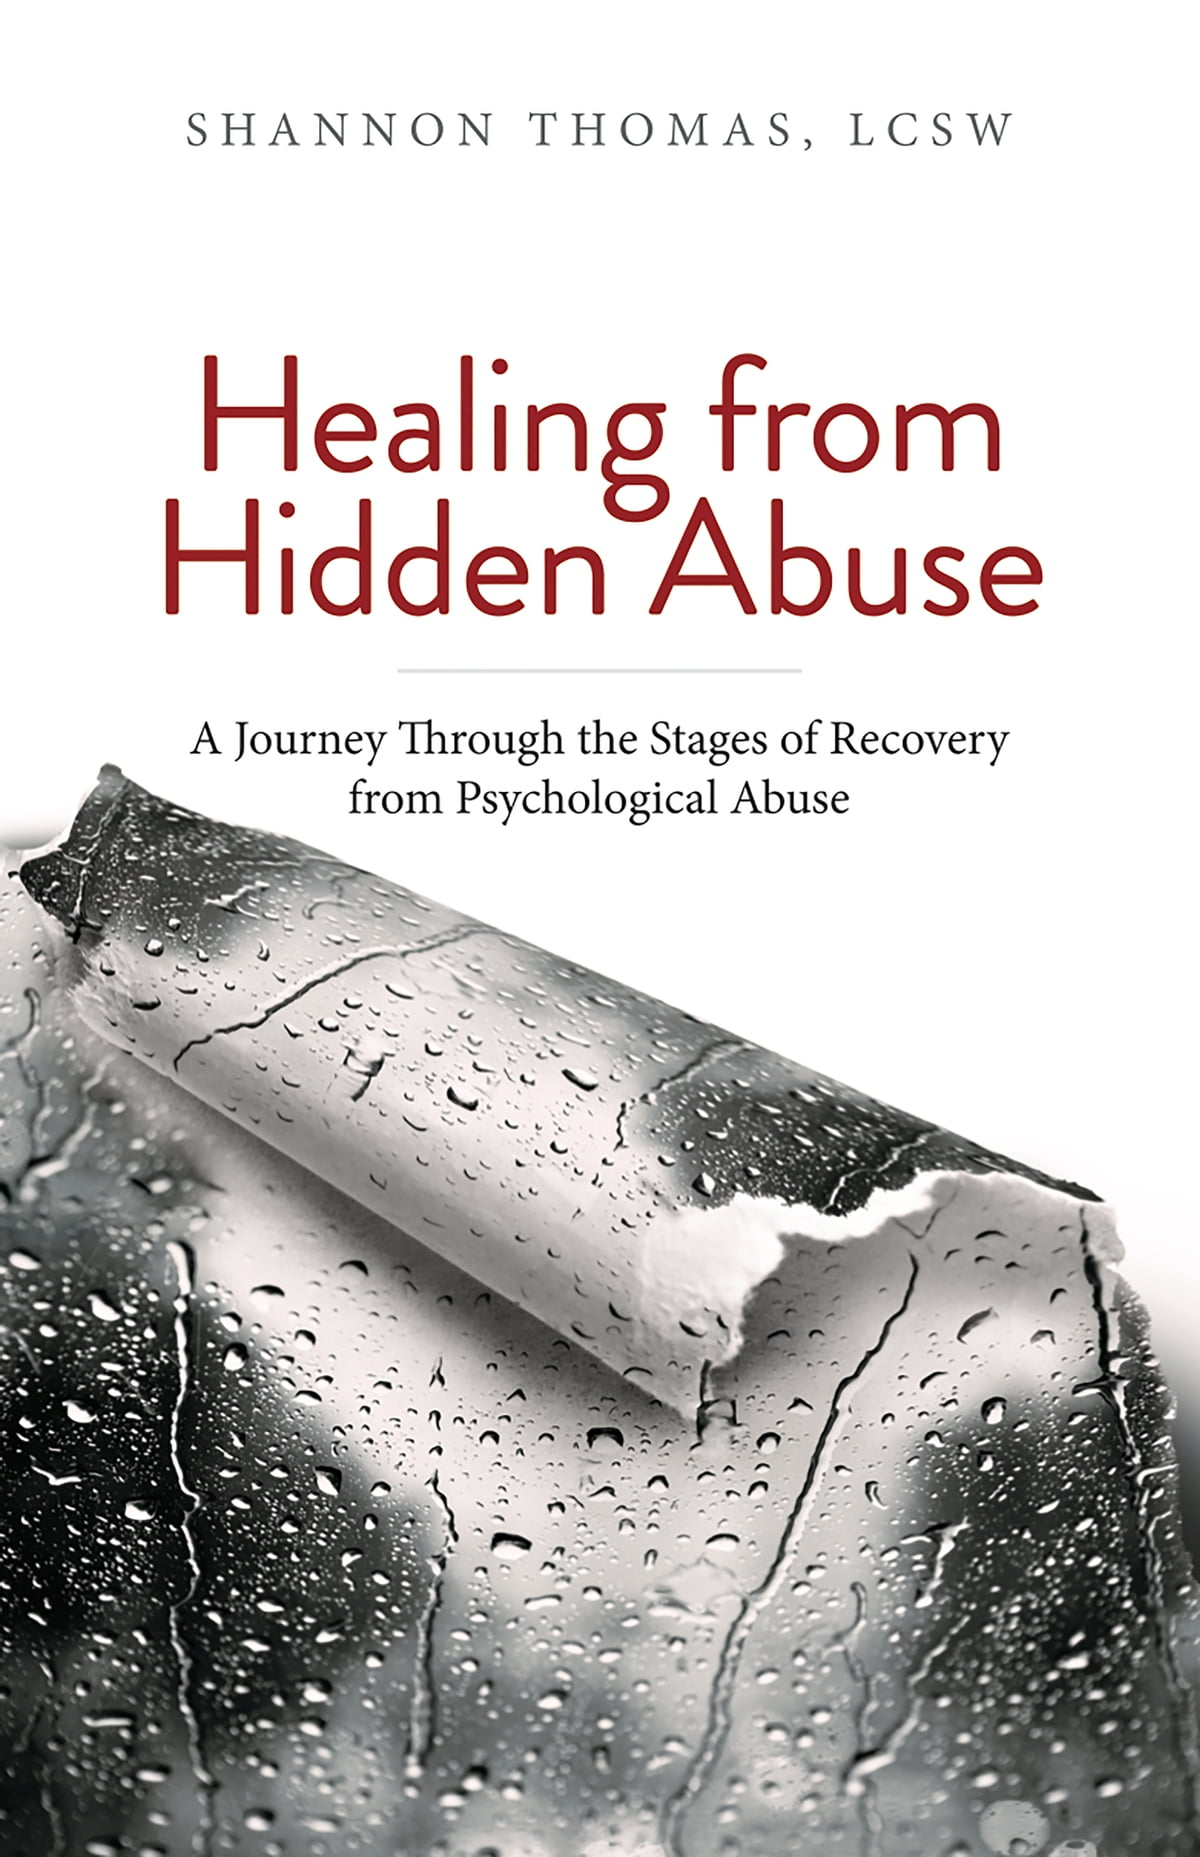 Healing from Hidden Abuse eBook by Shannon Thomas, LCSW ...